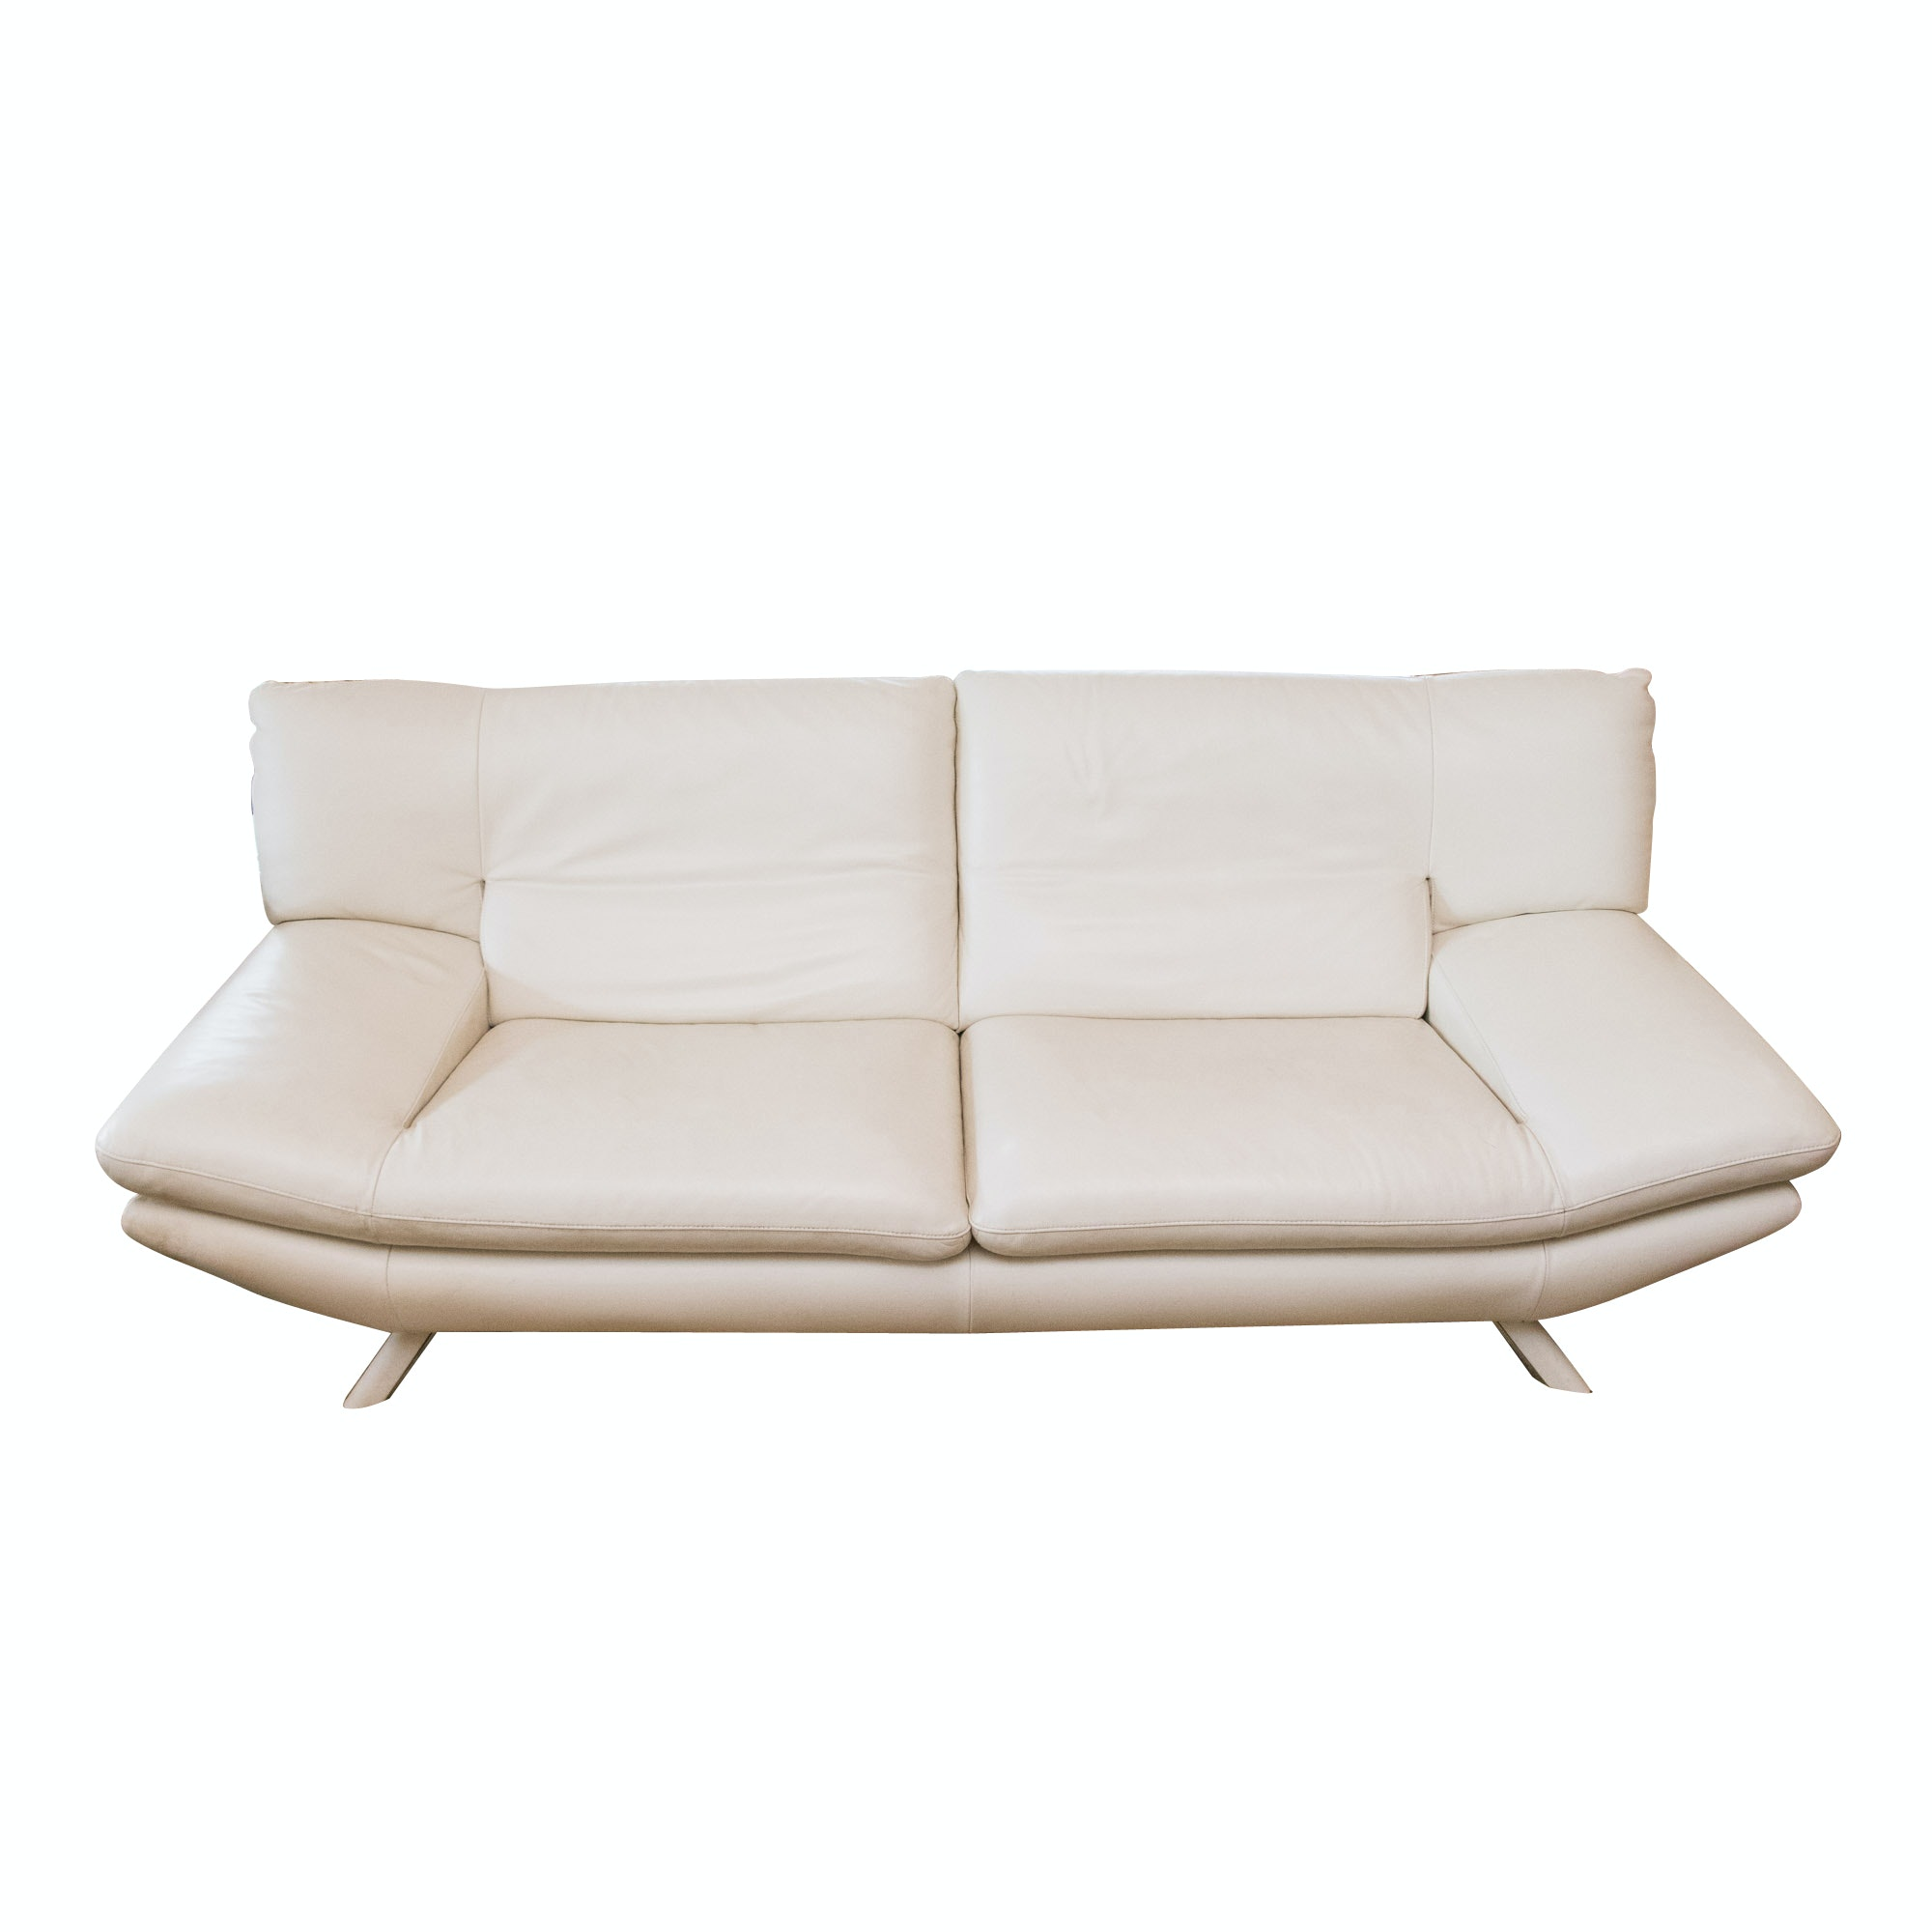 Mid Century Modern Style Sofa by Furniture Fair, Late 20th Century